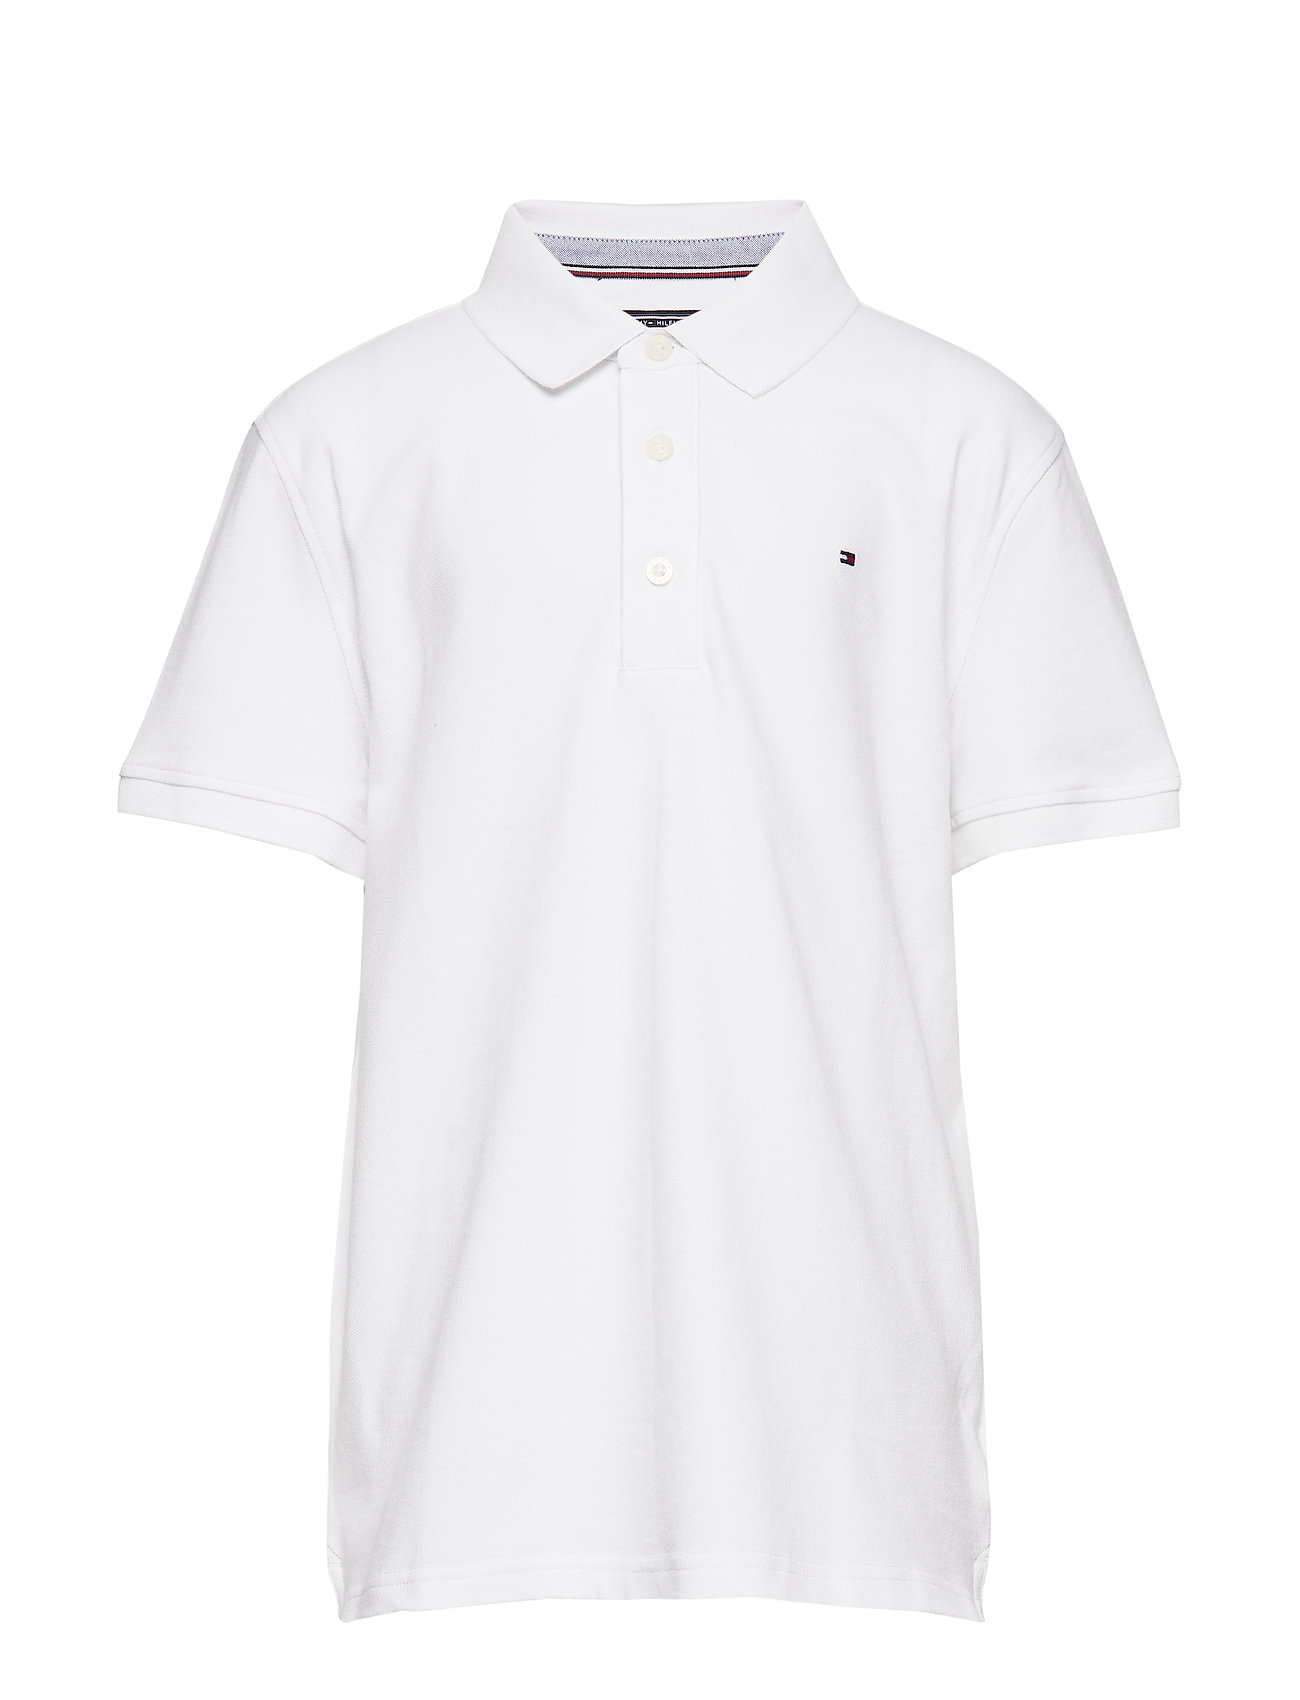 Tommy Hilfiger BOYS TOMMY POLO S/S - BRIGHT WHITE